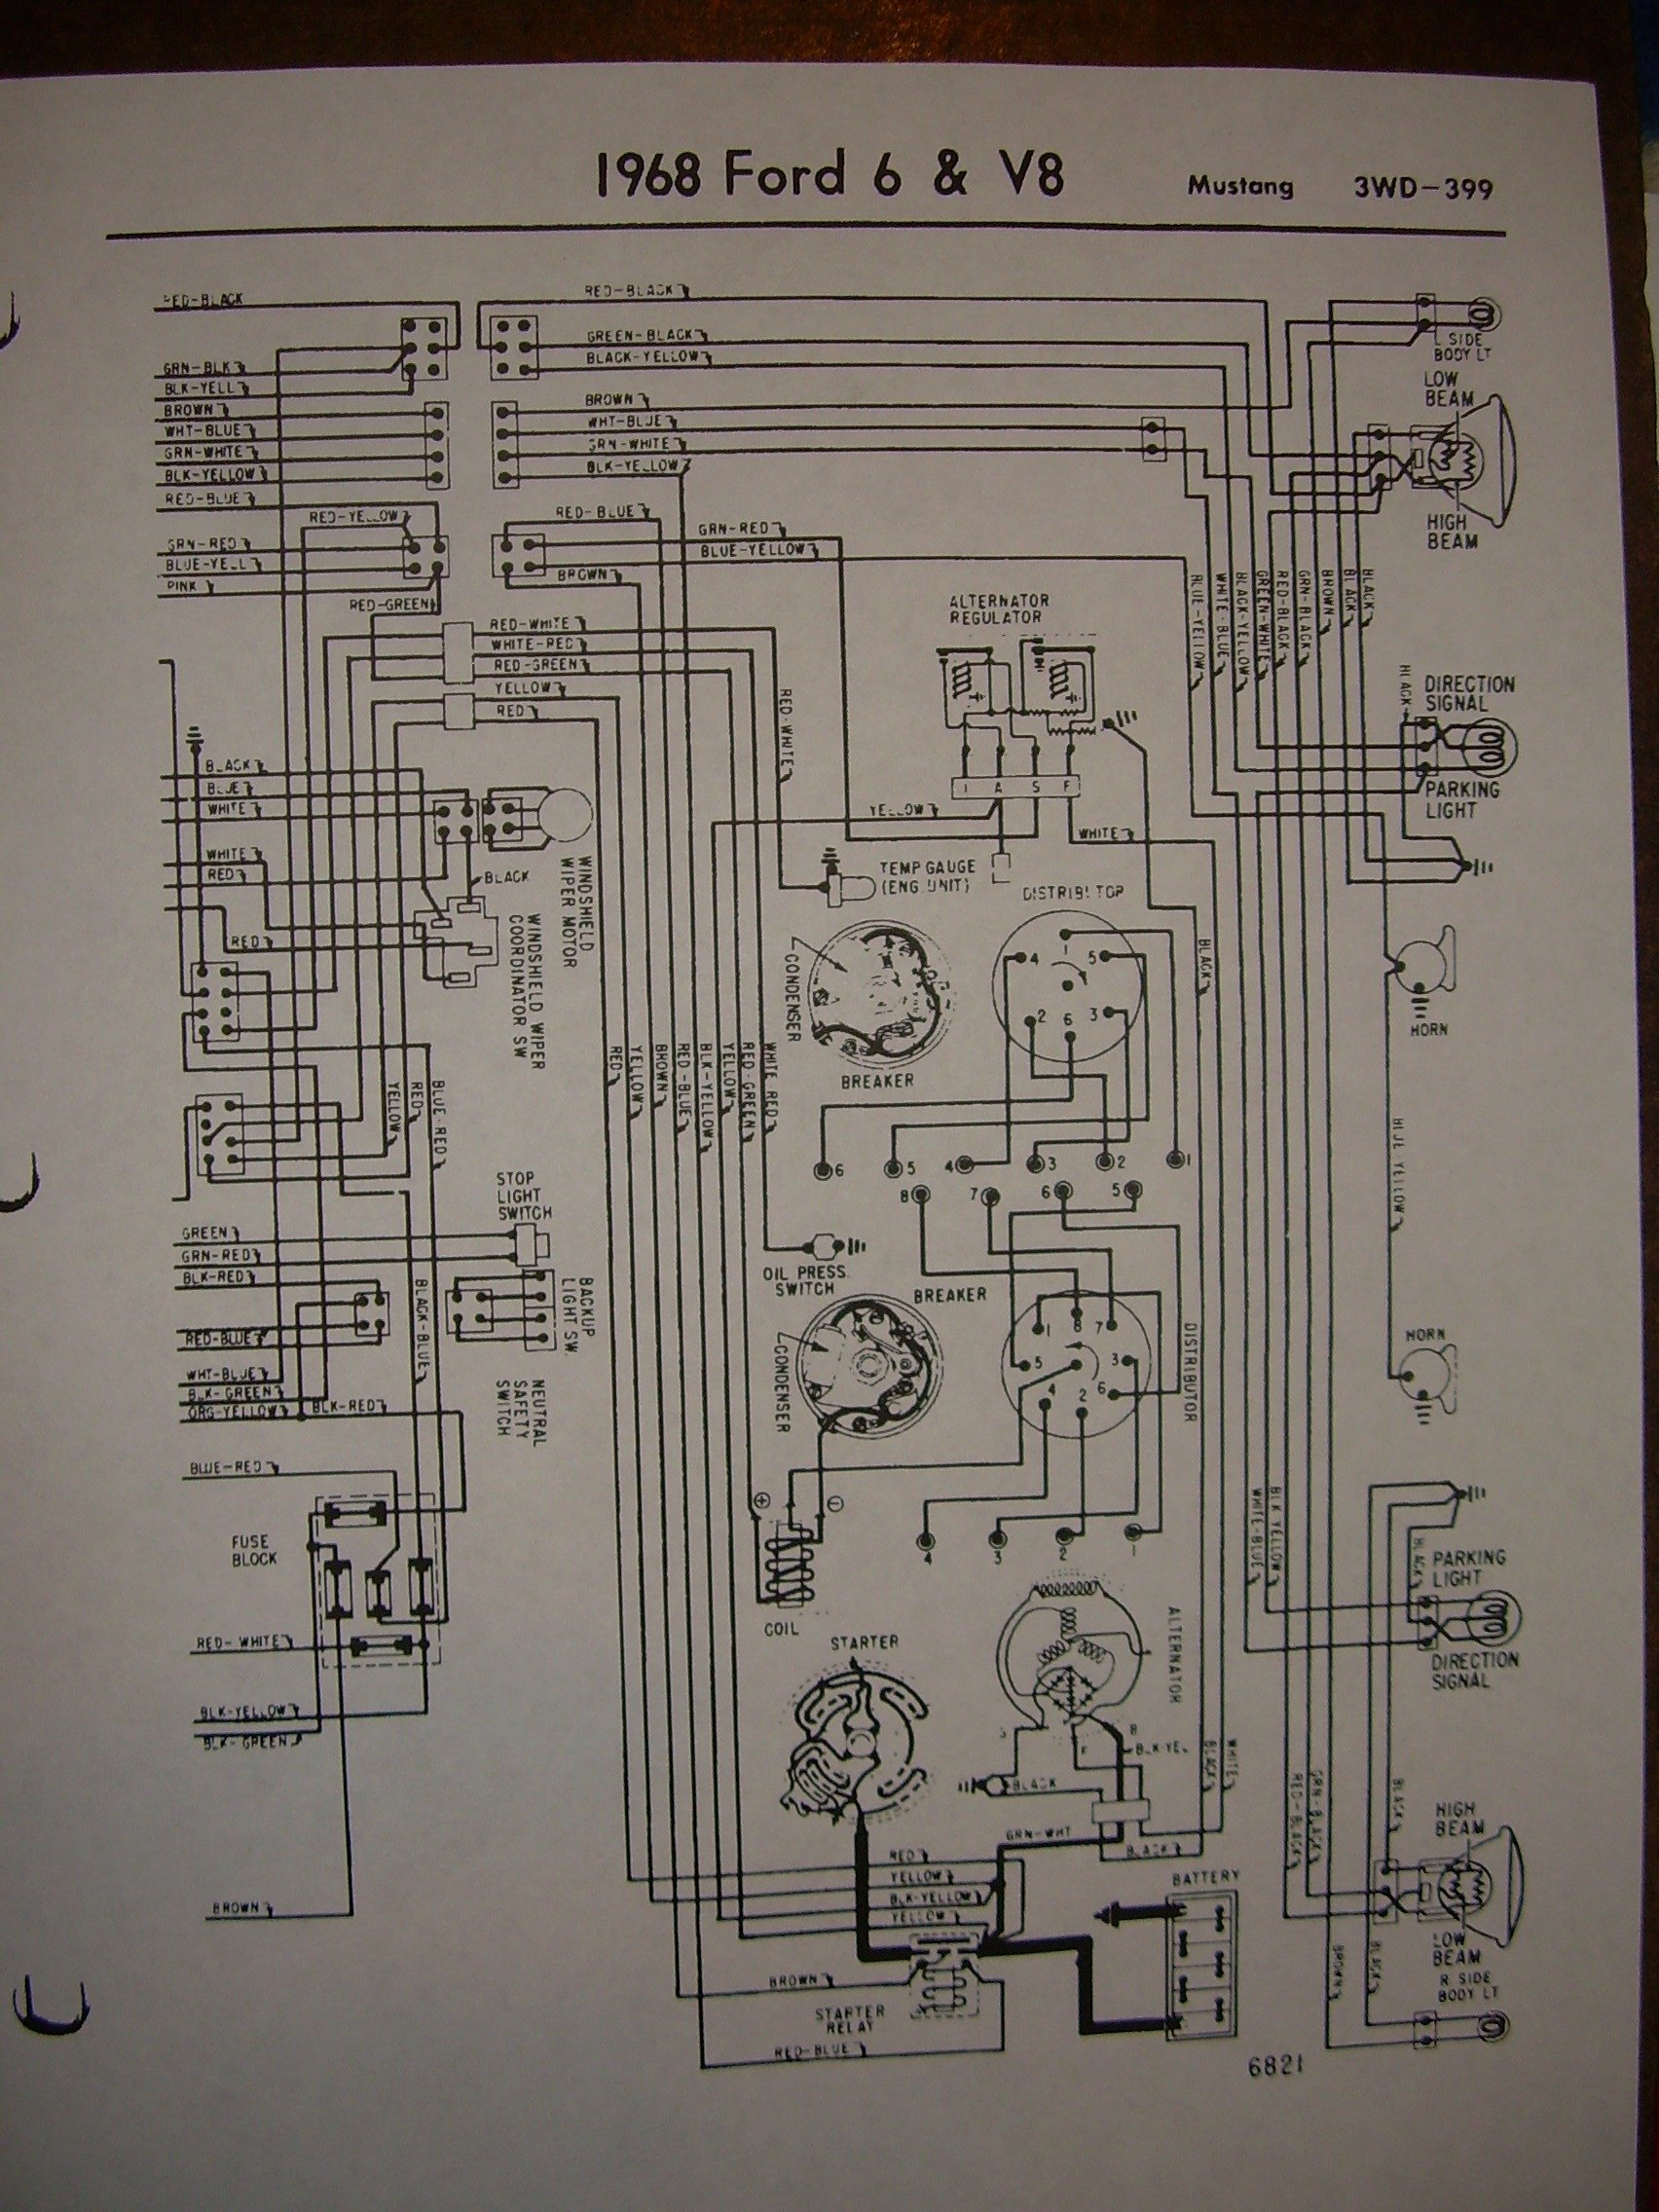 68 Dash Lights Diagram Trusted Wiring Mustang Easy To Read Diagrams U2022 1968